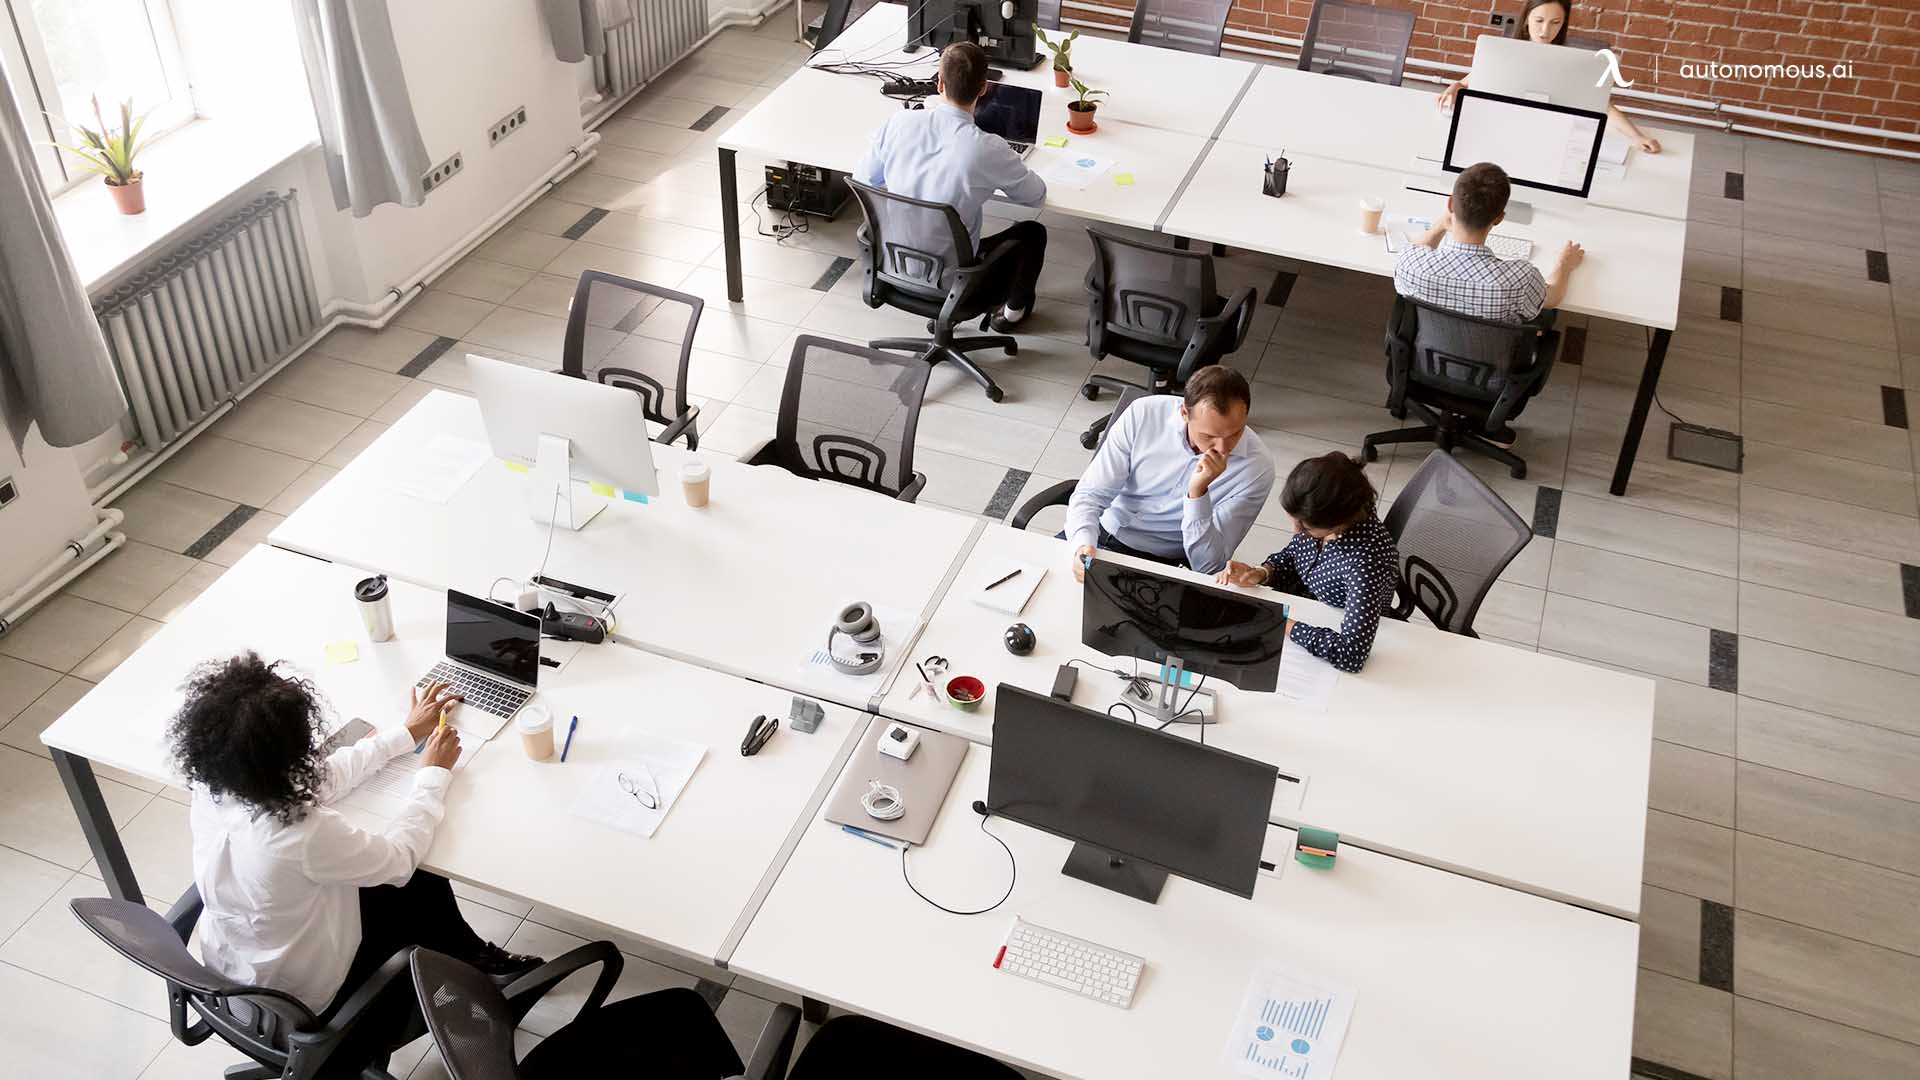 What is hot desking?